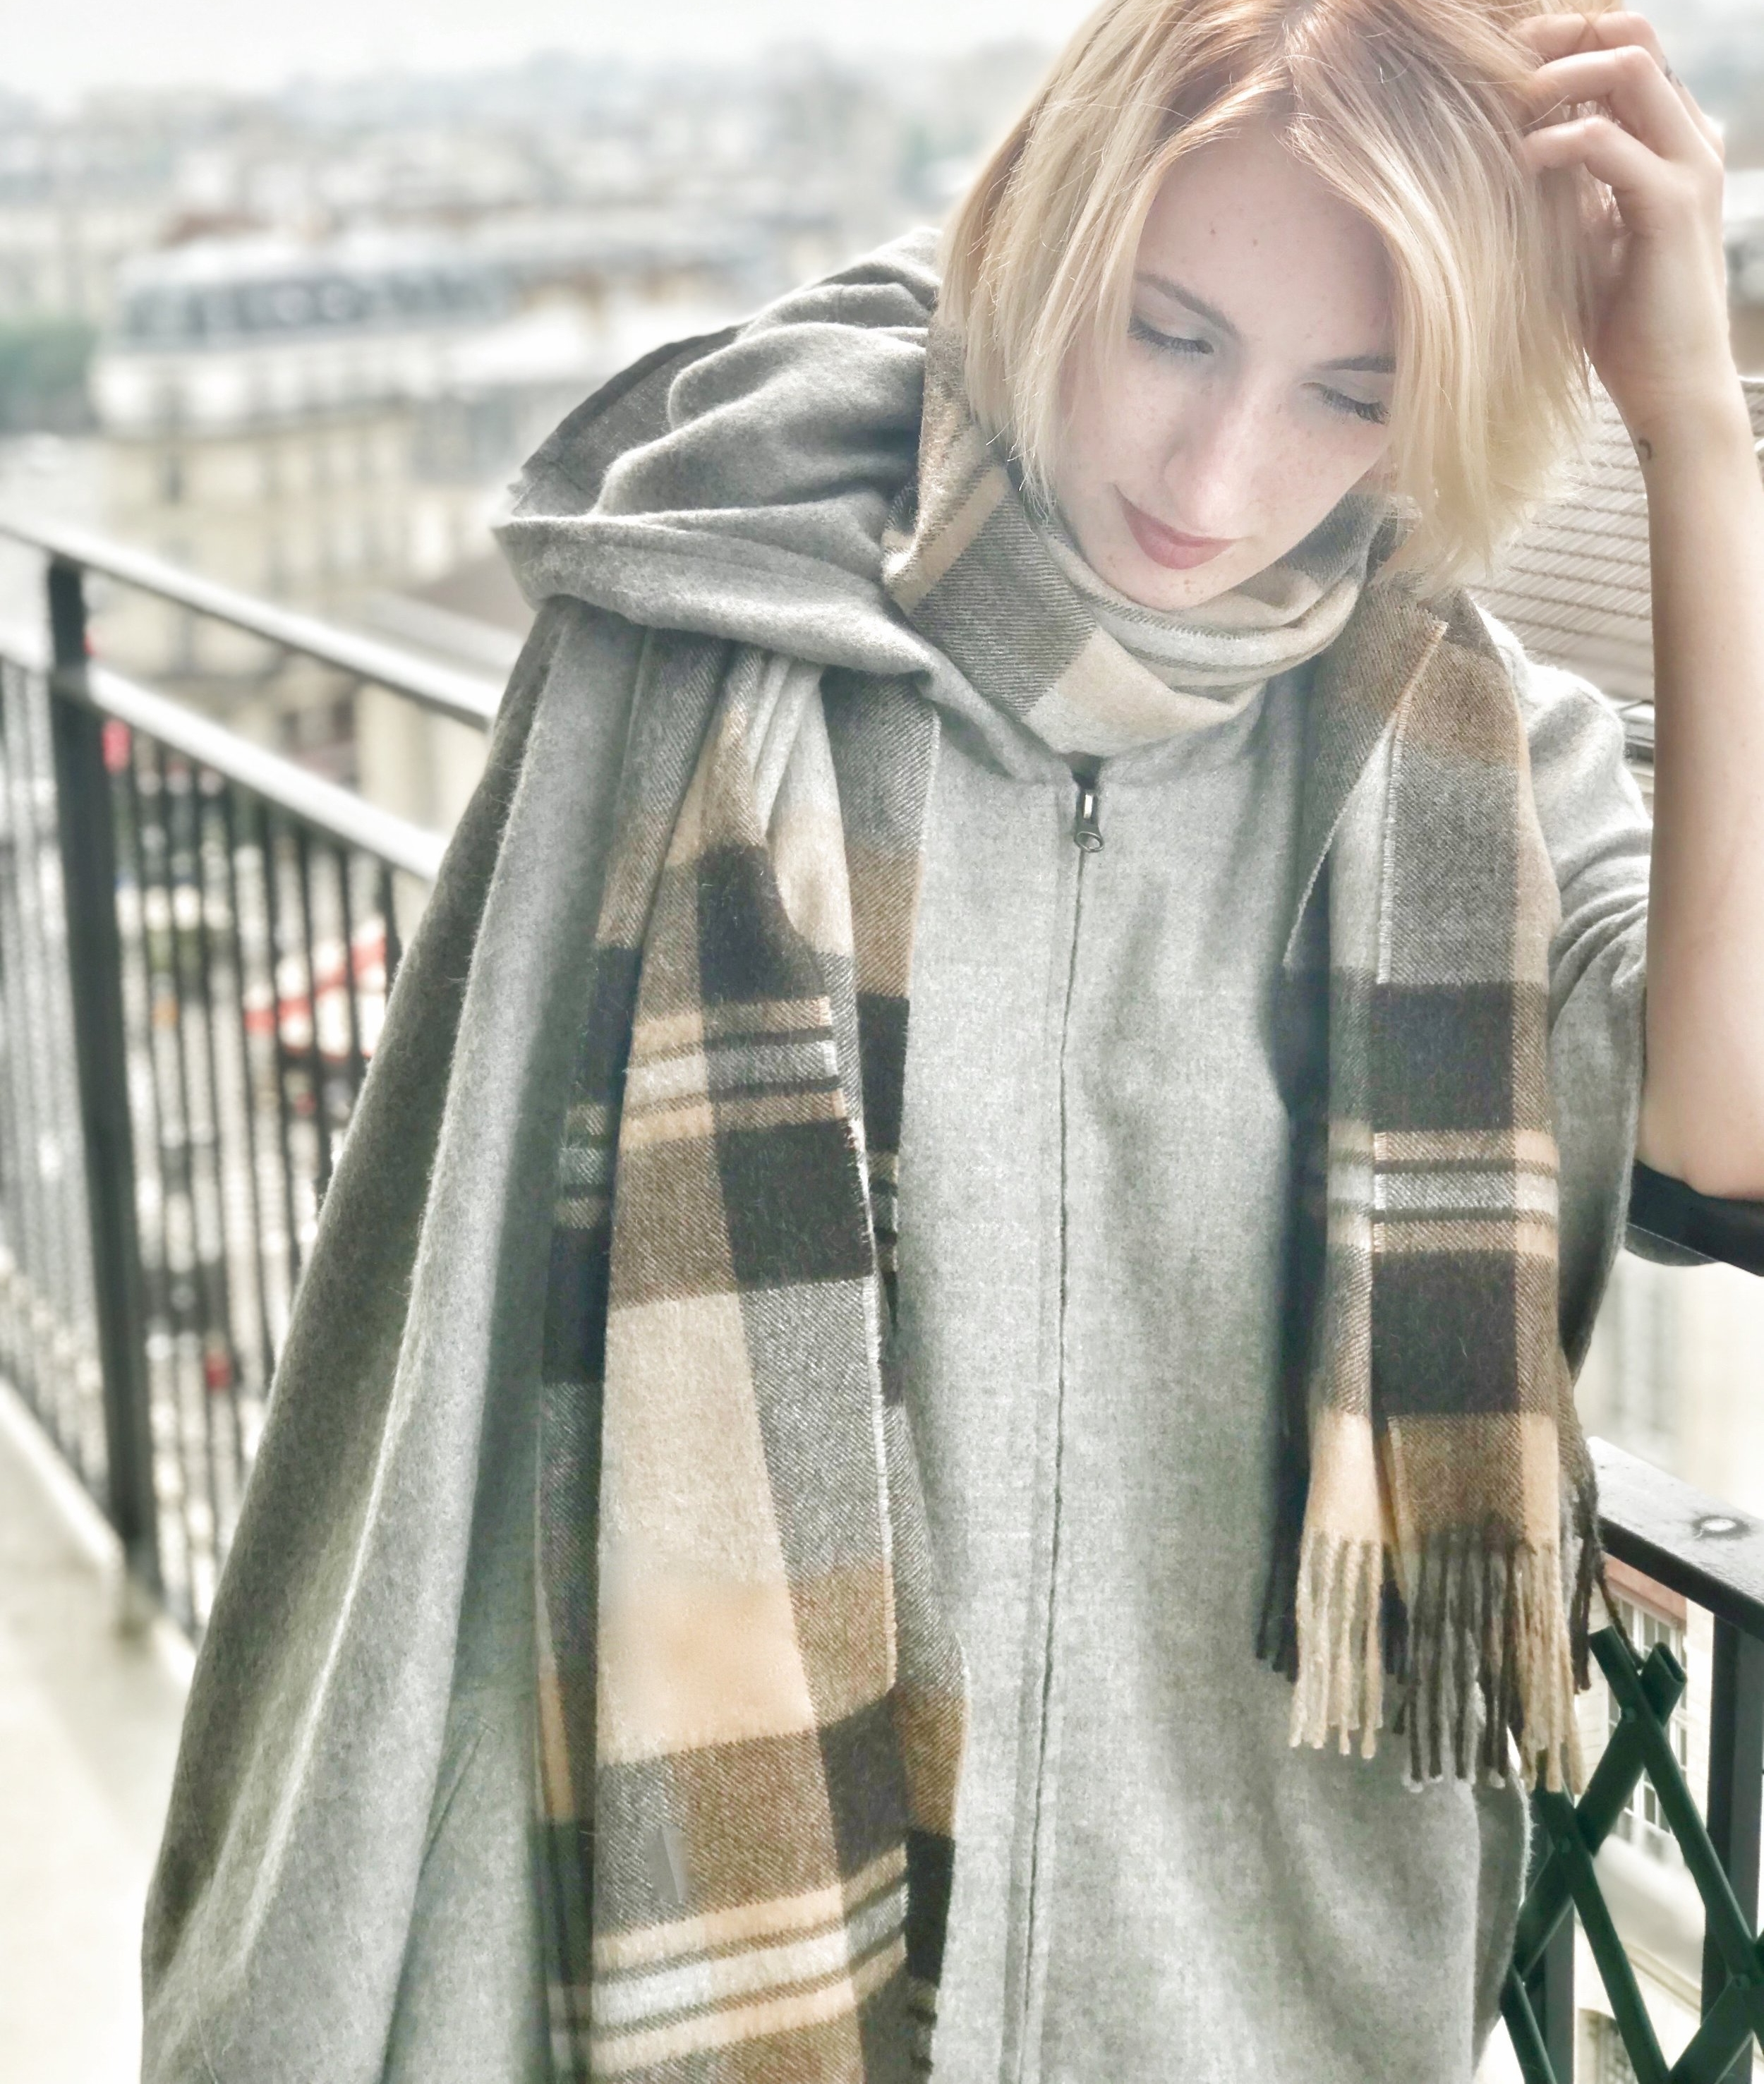 boy-friend wrap - oversize scarf or travel wrap, ultimately the coziest scarf for this winter!